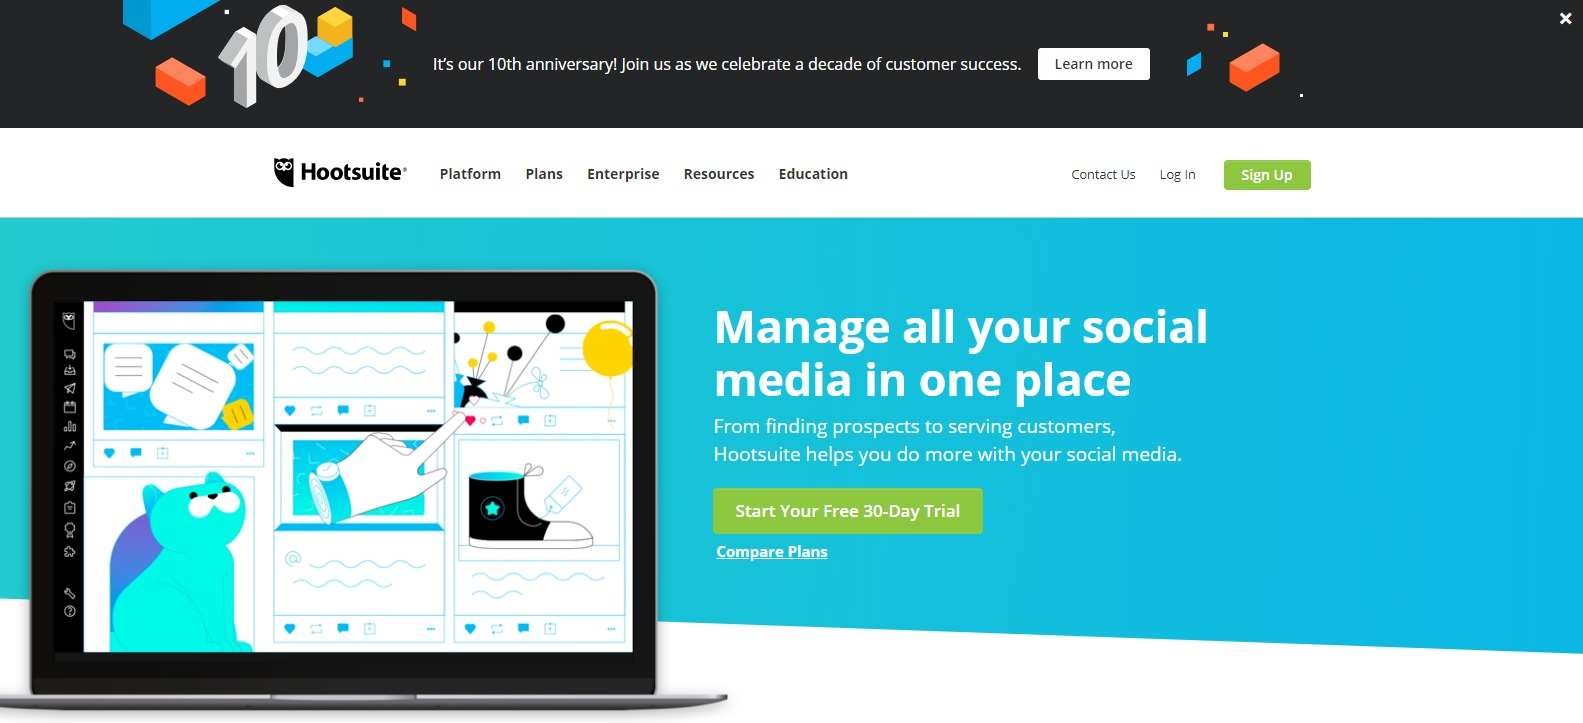 Social Media Marketing - Hootsuite